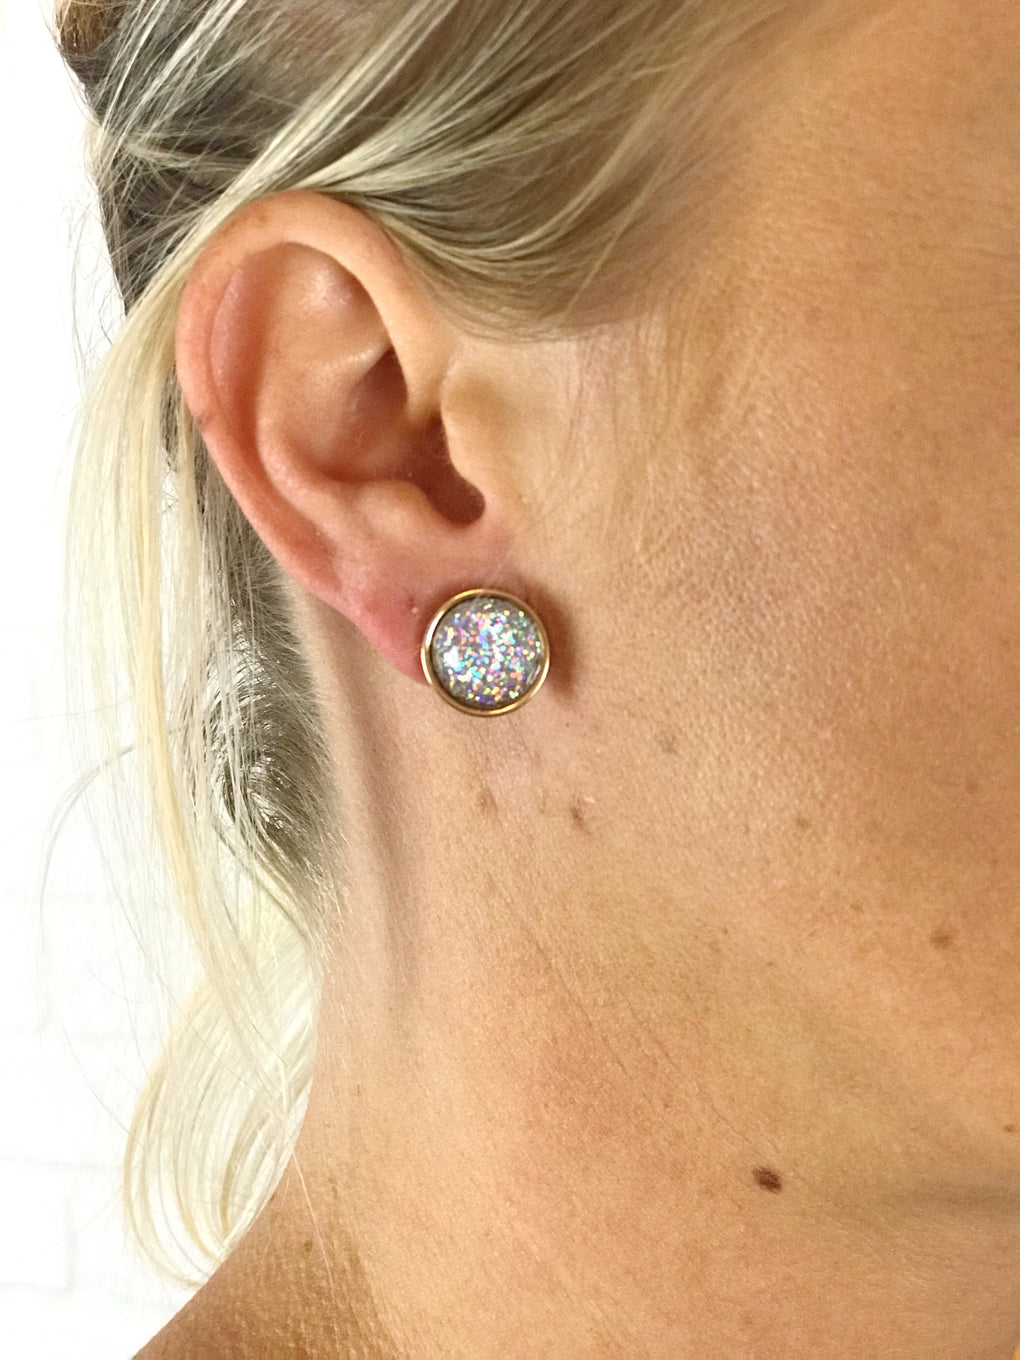 Empire Glitter Stud Earrings - assorted colors